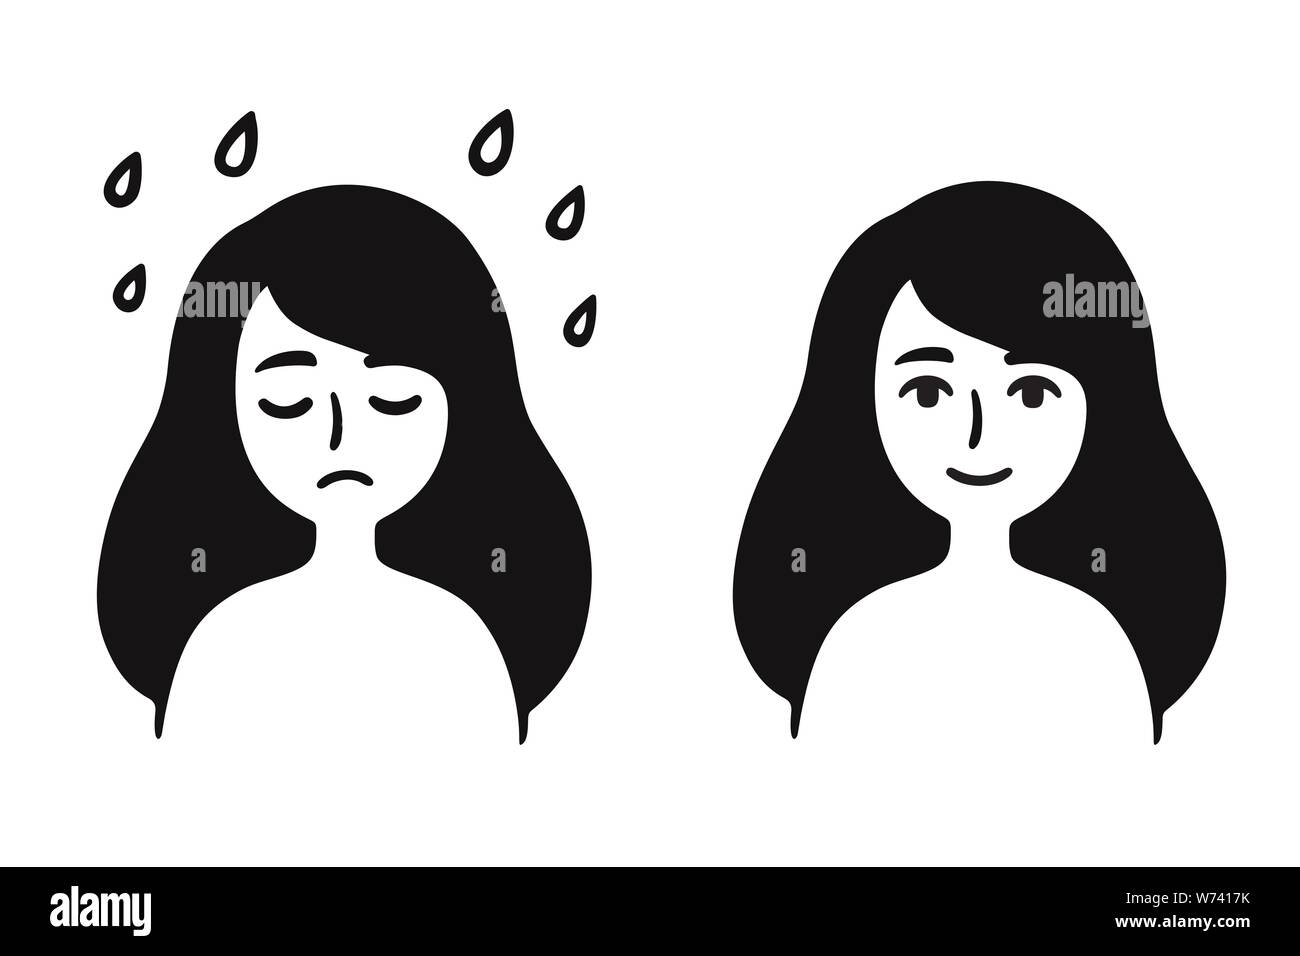 Young Girl With Sad Depressed Face And Normal Content Expression Black And White Simple Cartoon Drawing Overcoming Depression And Stress Mental H Stock Vector Image Art Alamy